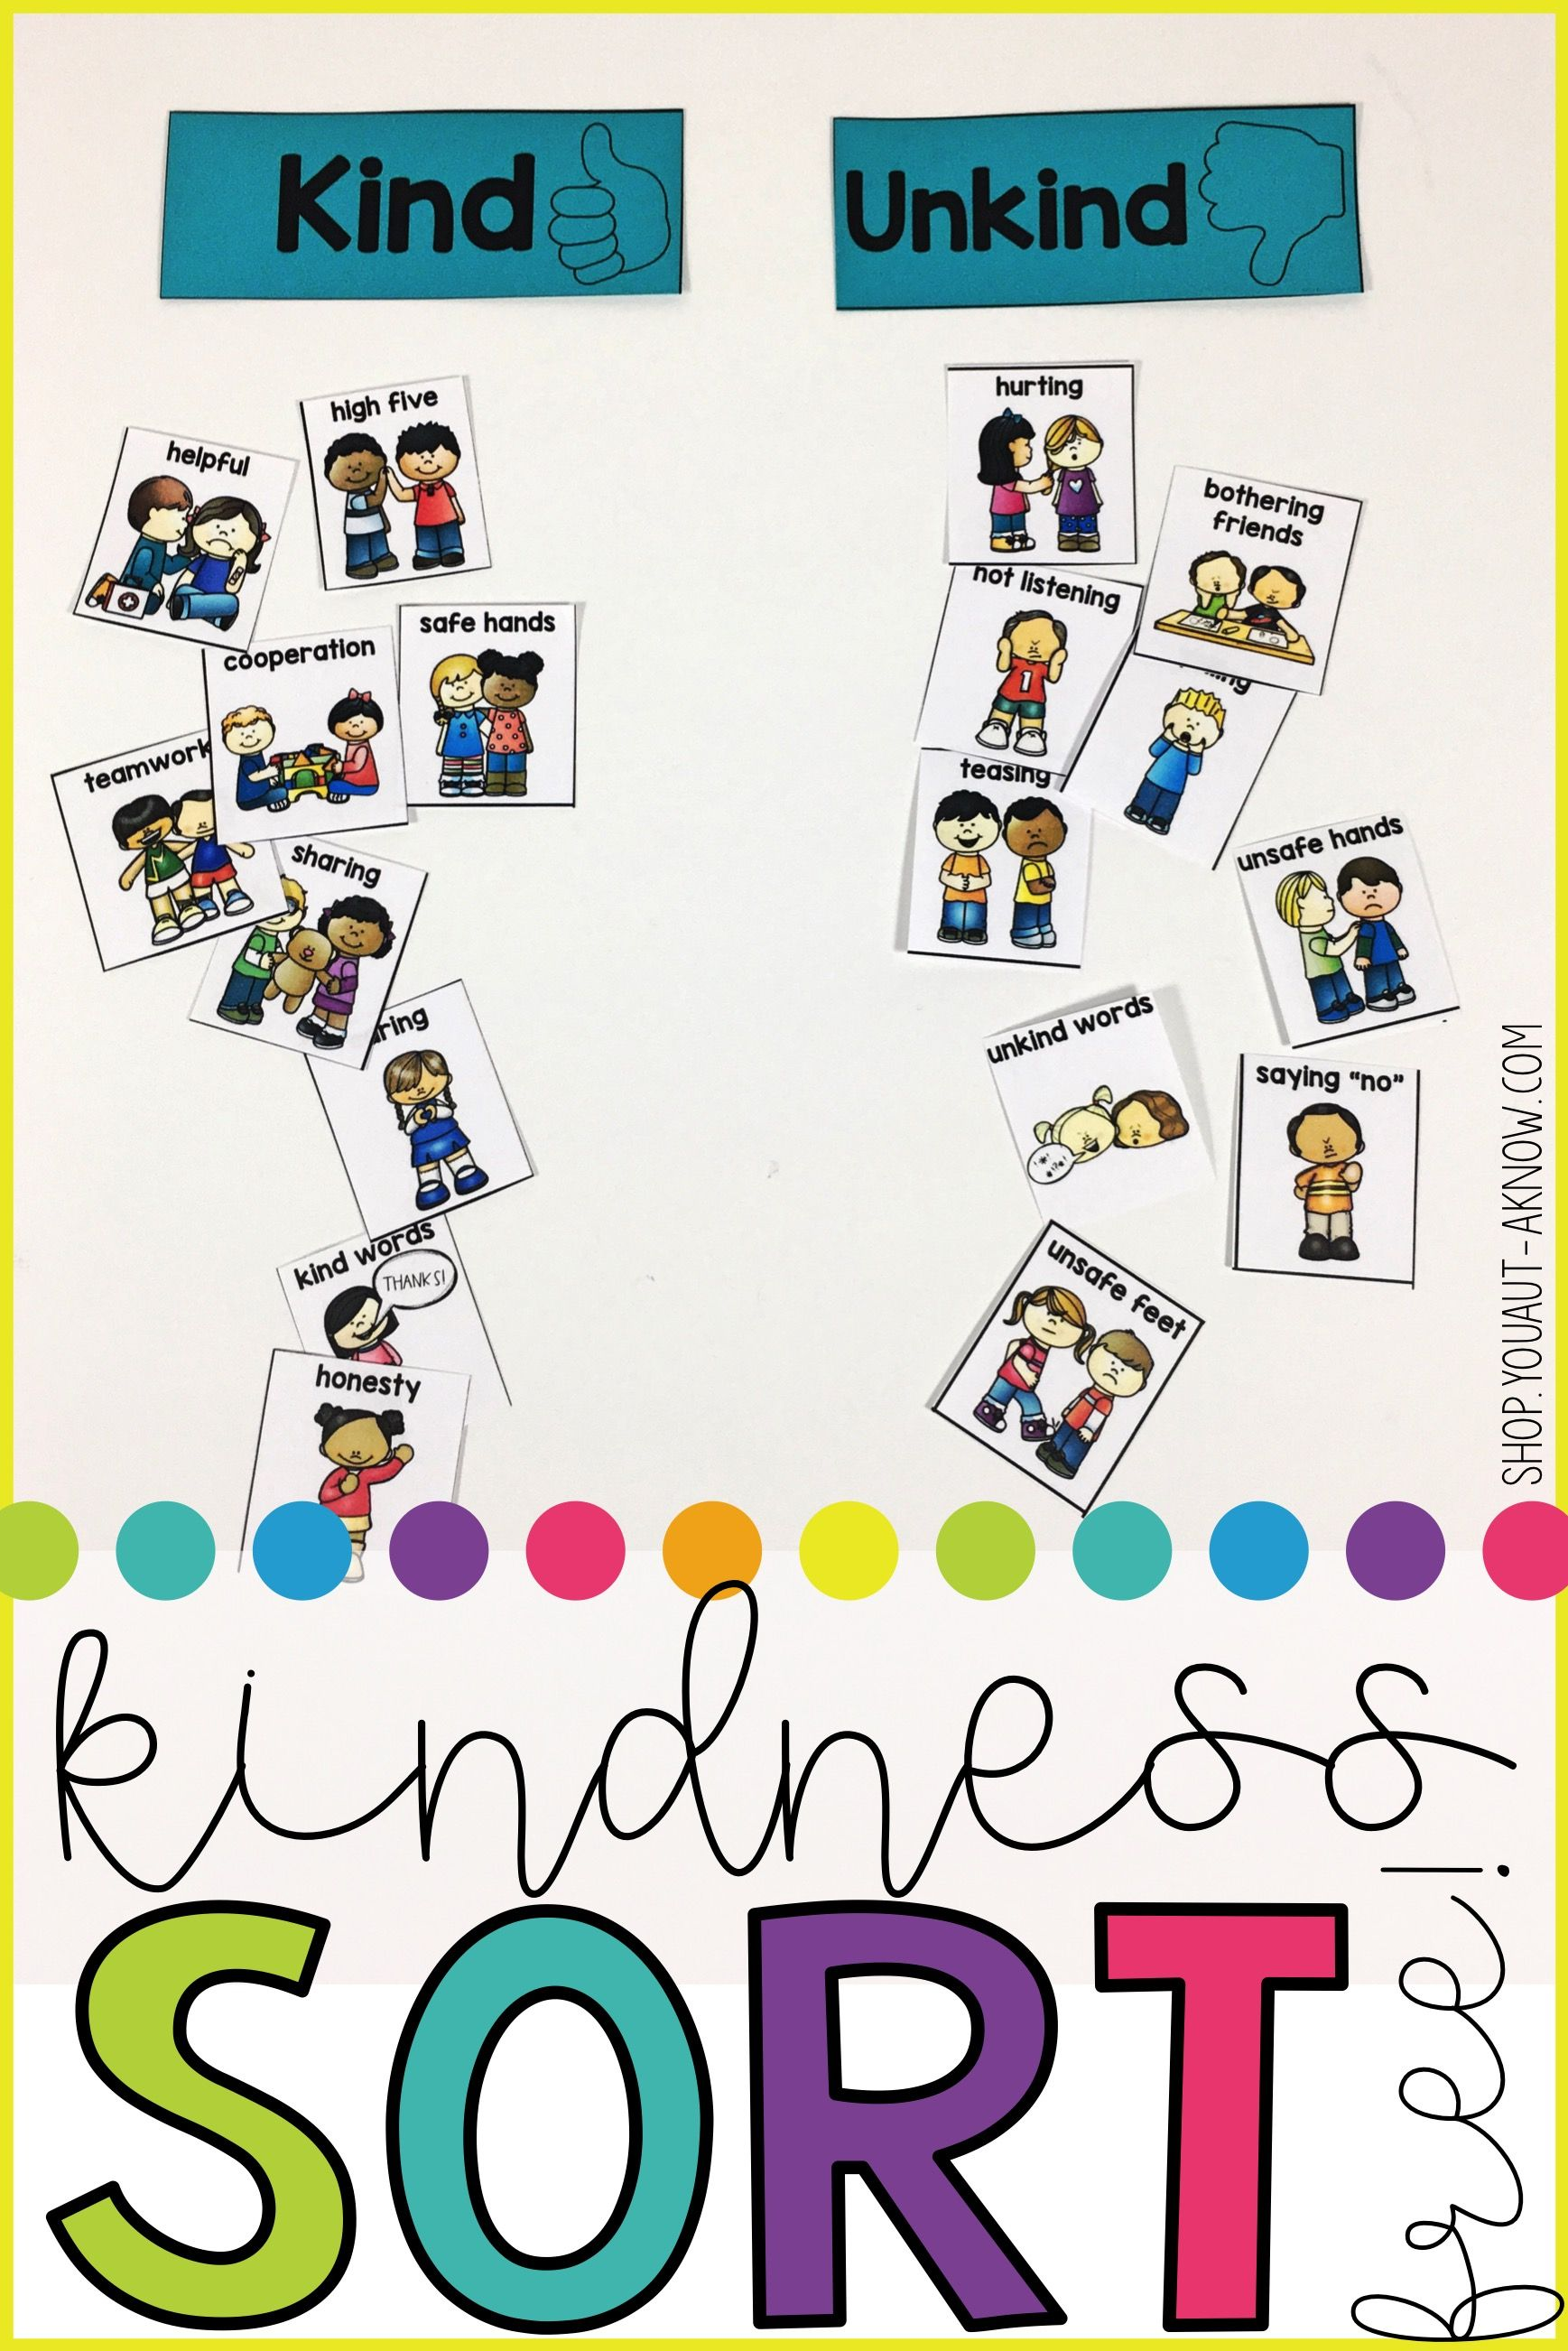 Kindnessrules Kindness Sort